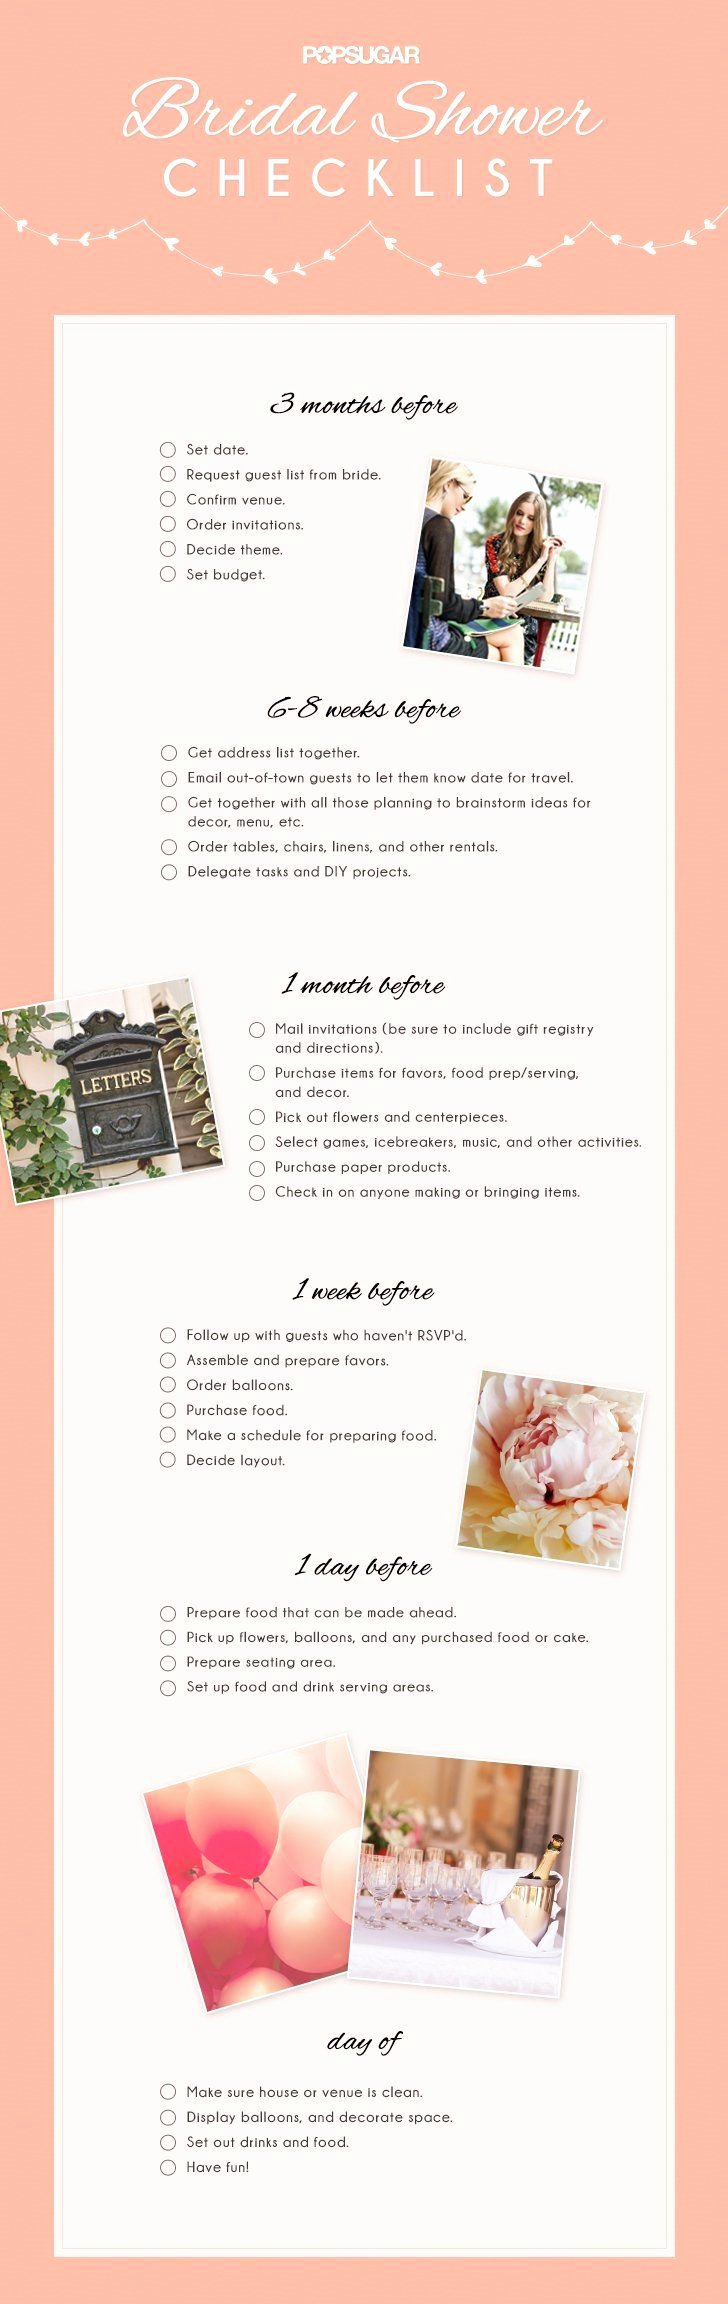 Bridal Shower Checklist Printable Luxury Best 25 Bridal Shower Checklist Ideas On Pinterest